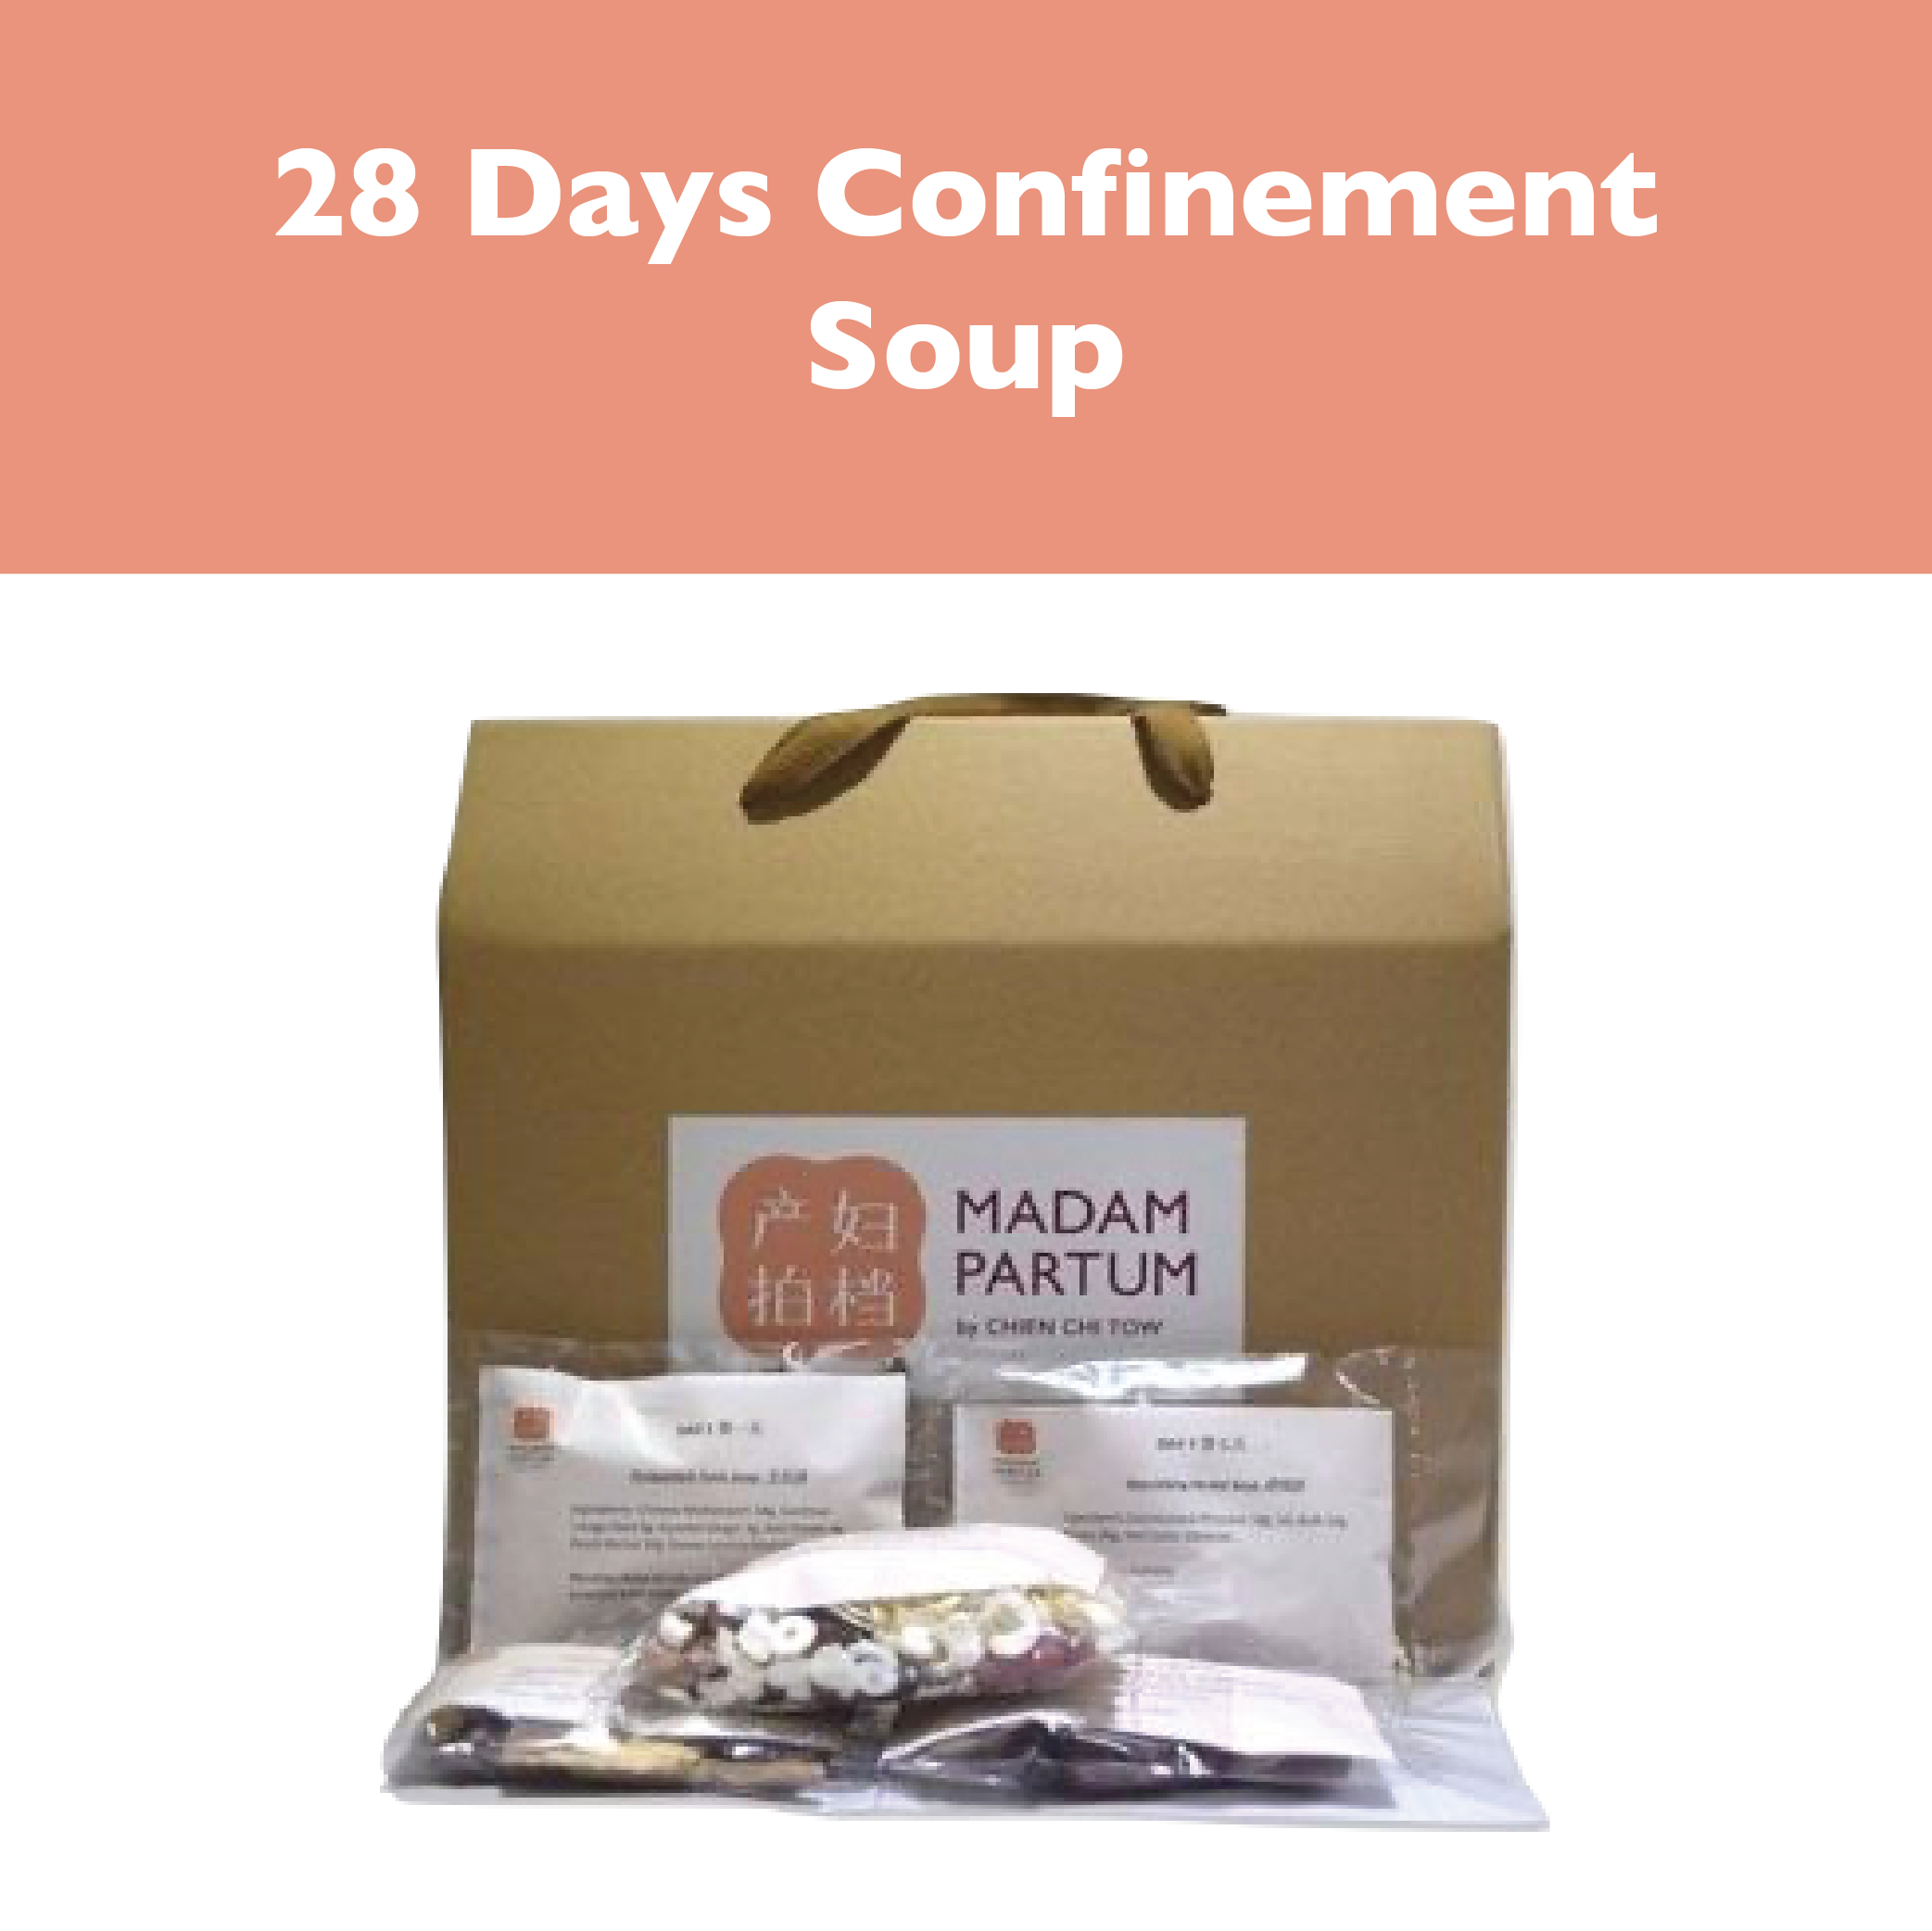 baby-fairMadam Partum 28 Days Confinement Soup